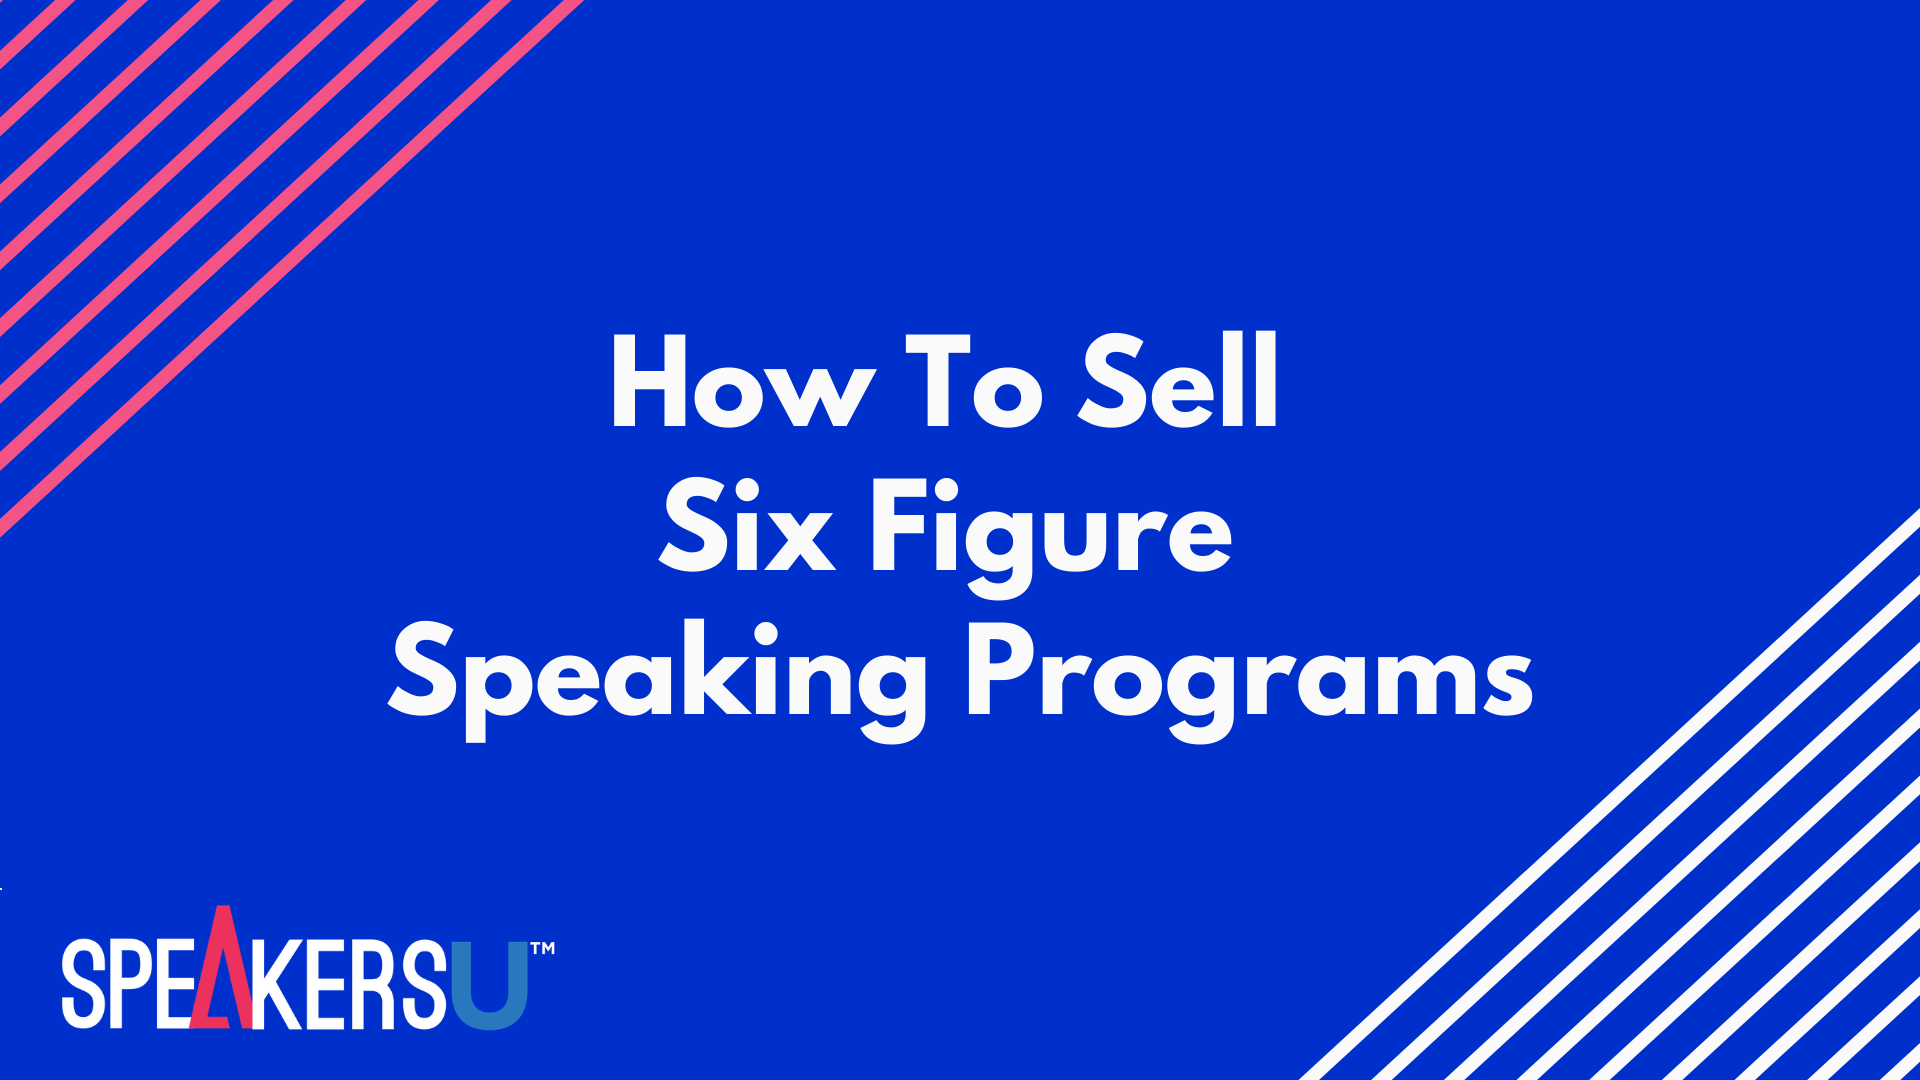 How To Sell Six-Figure Speaking Programs